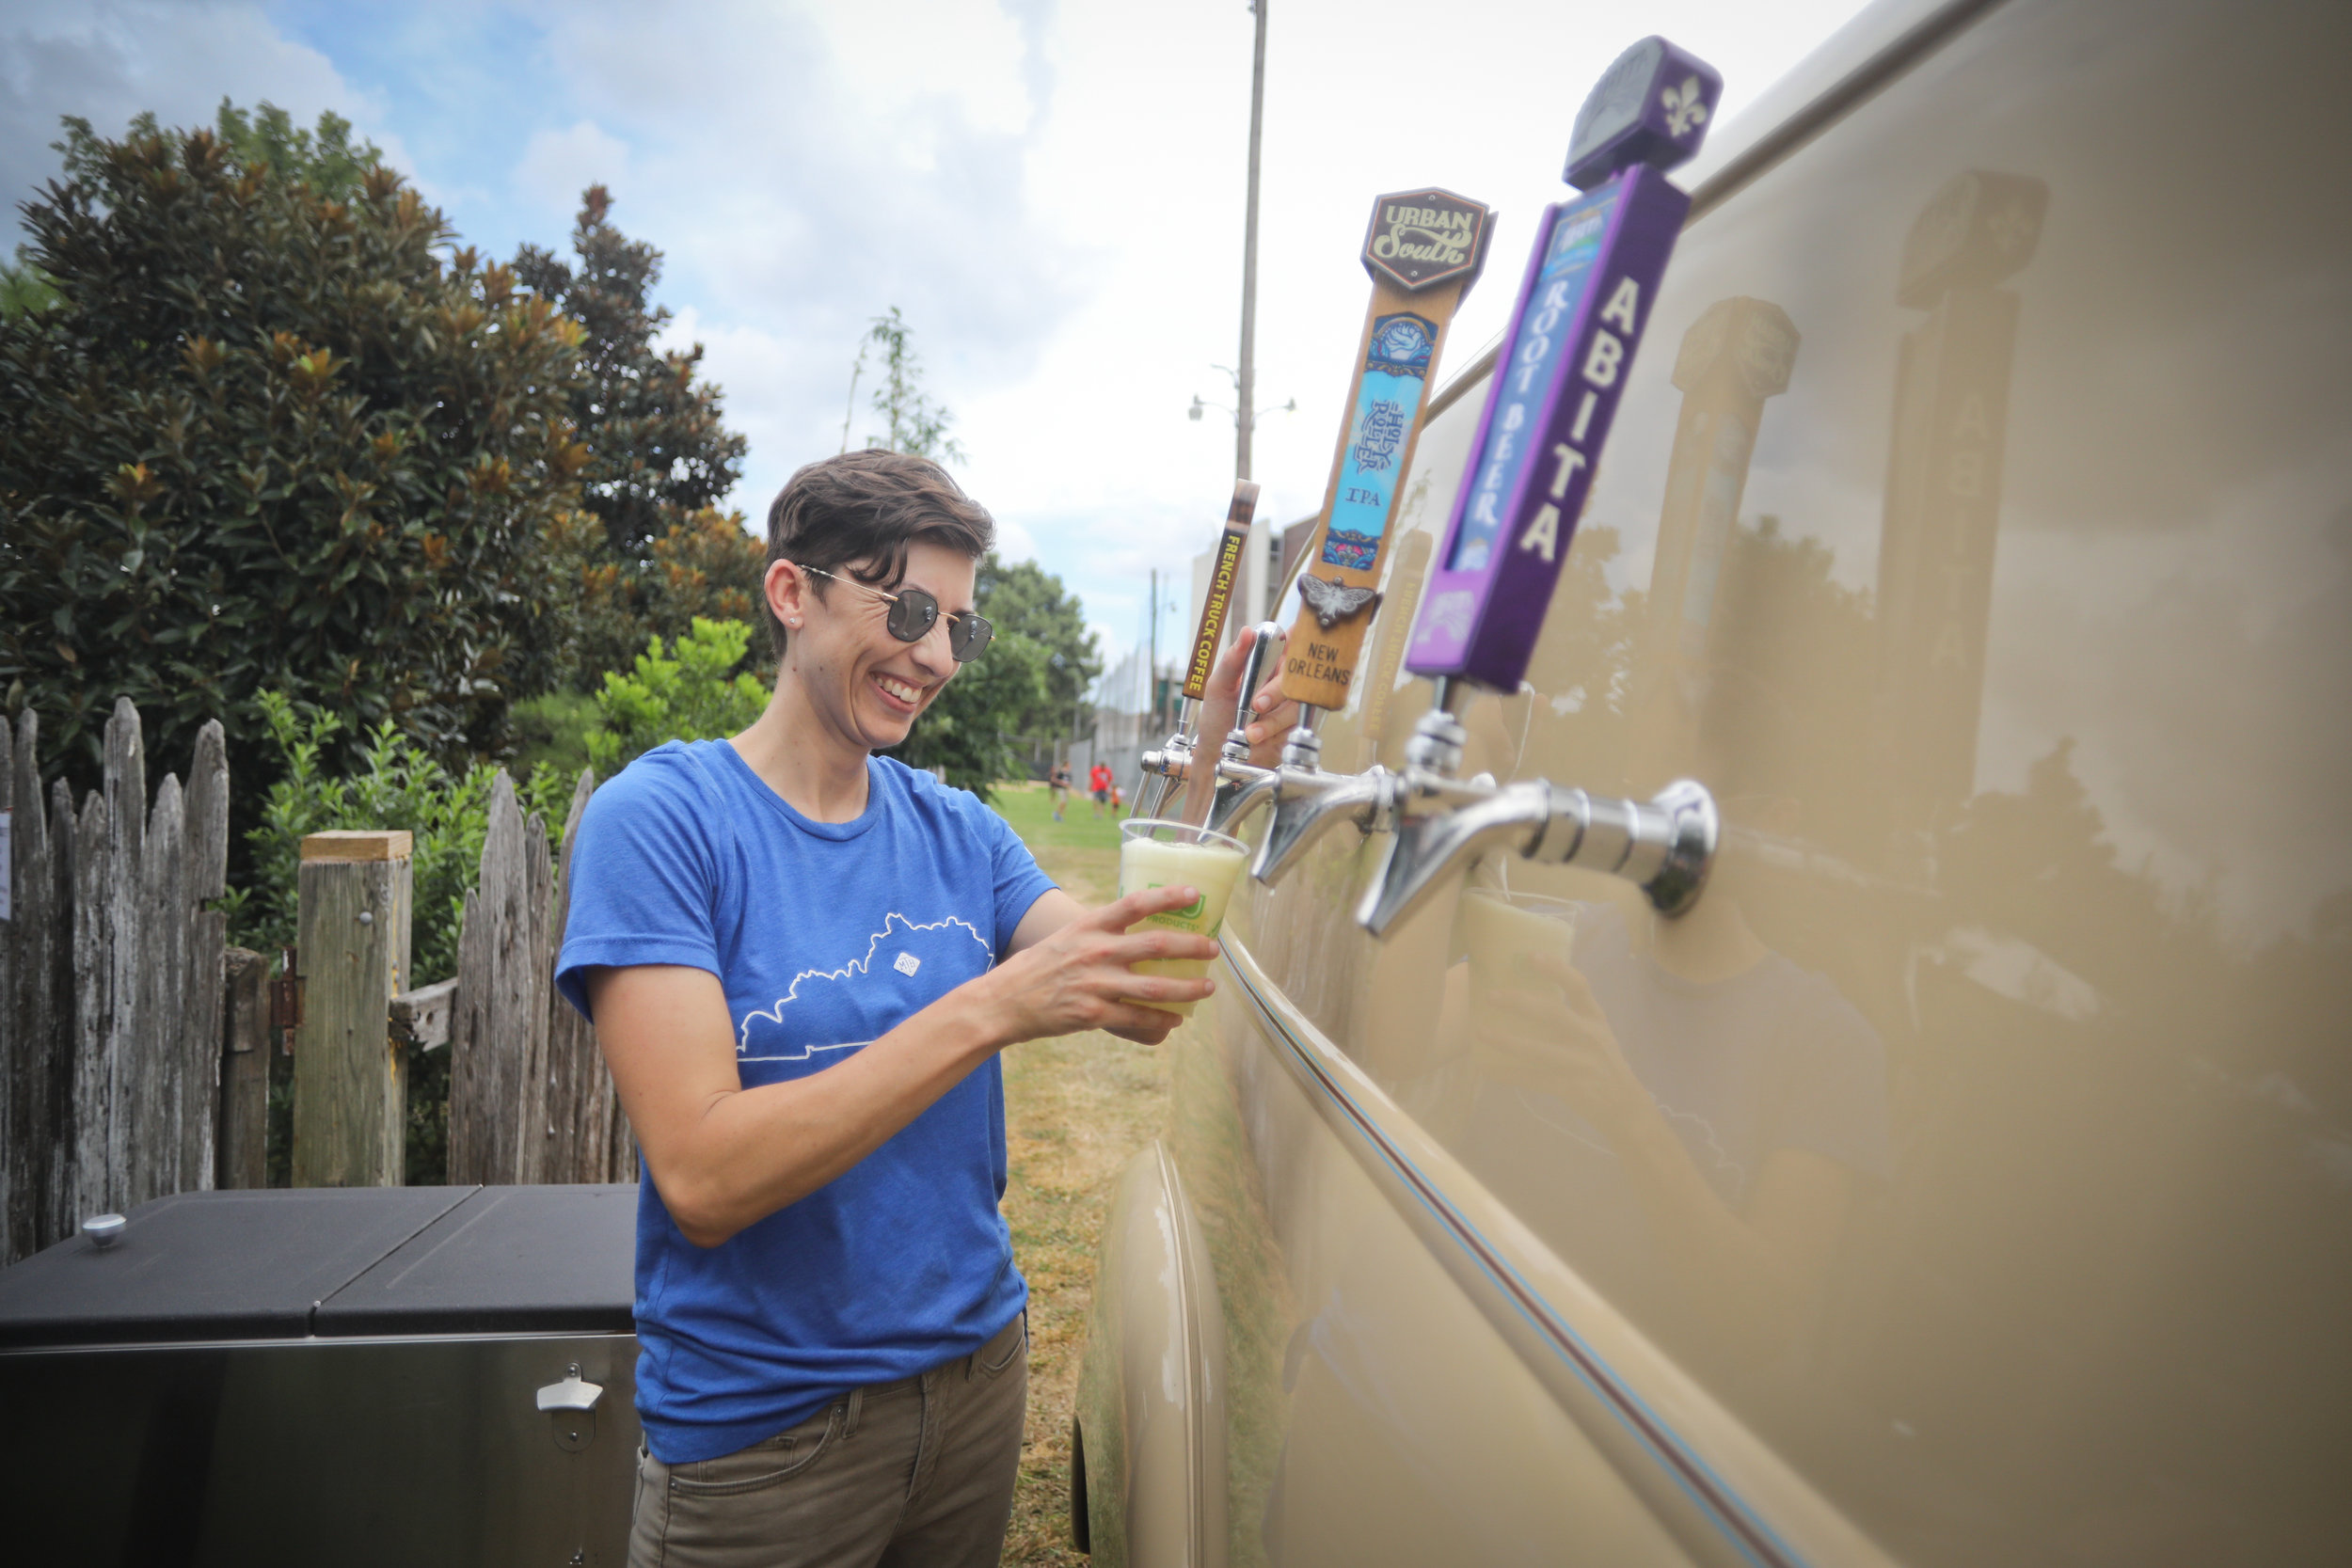 Taptruck NOLA serves drinks